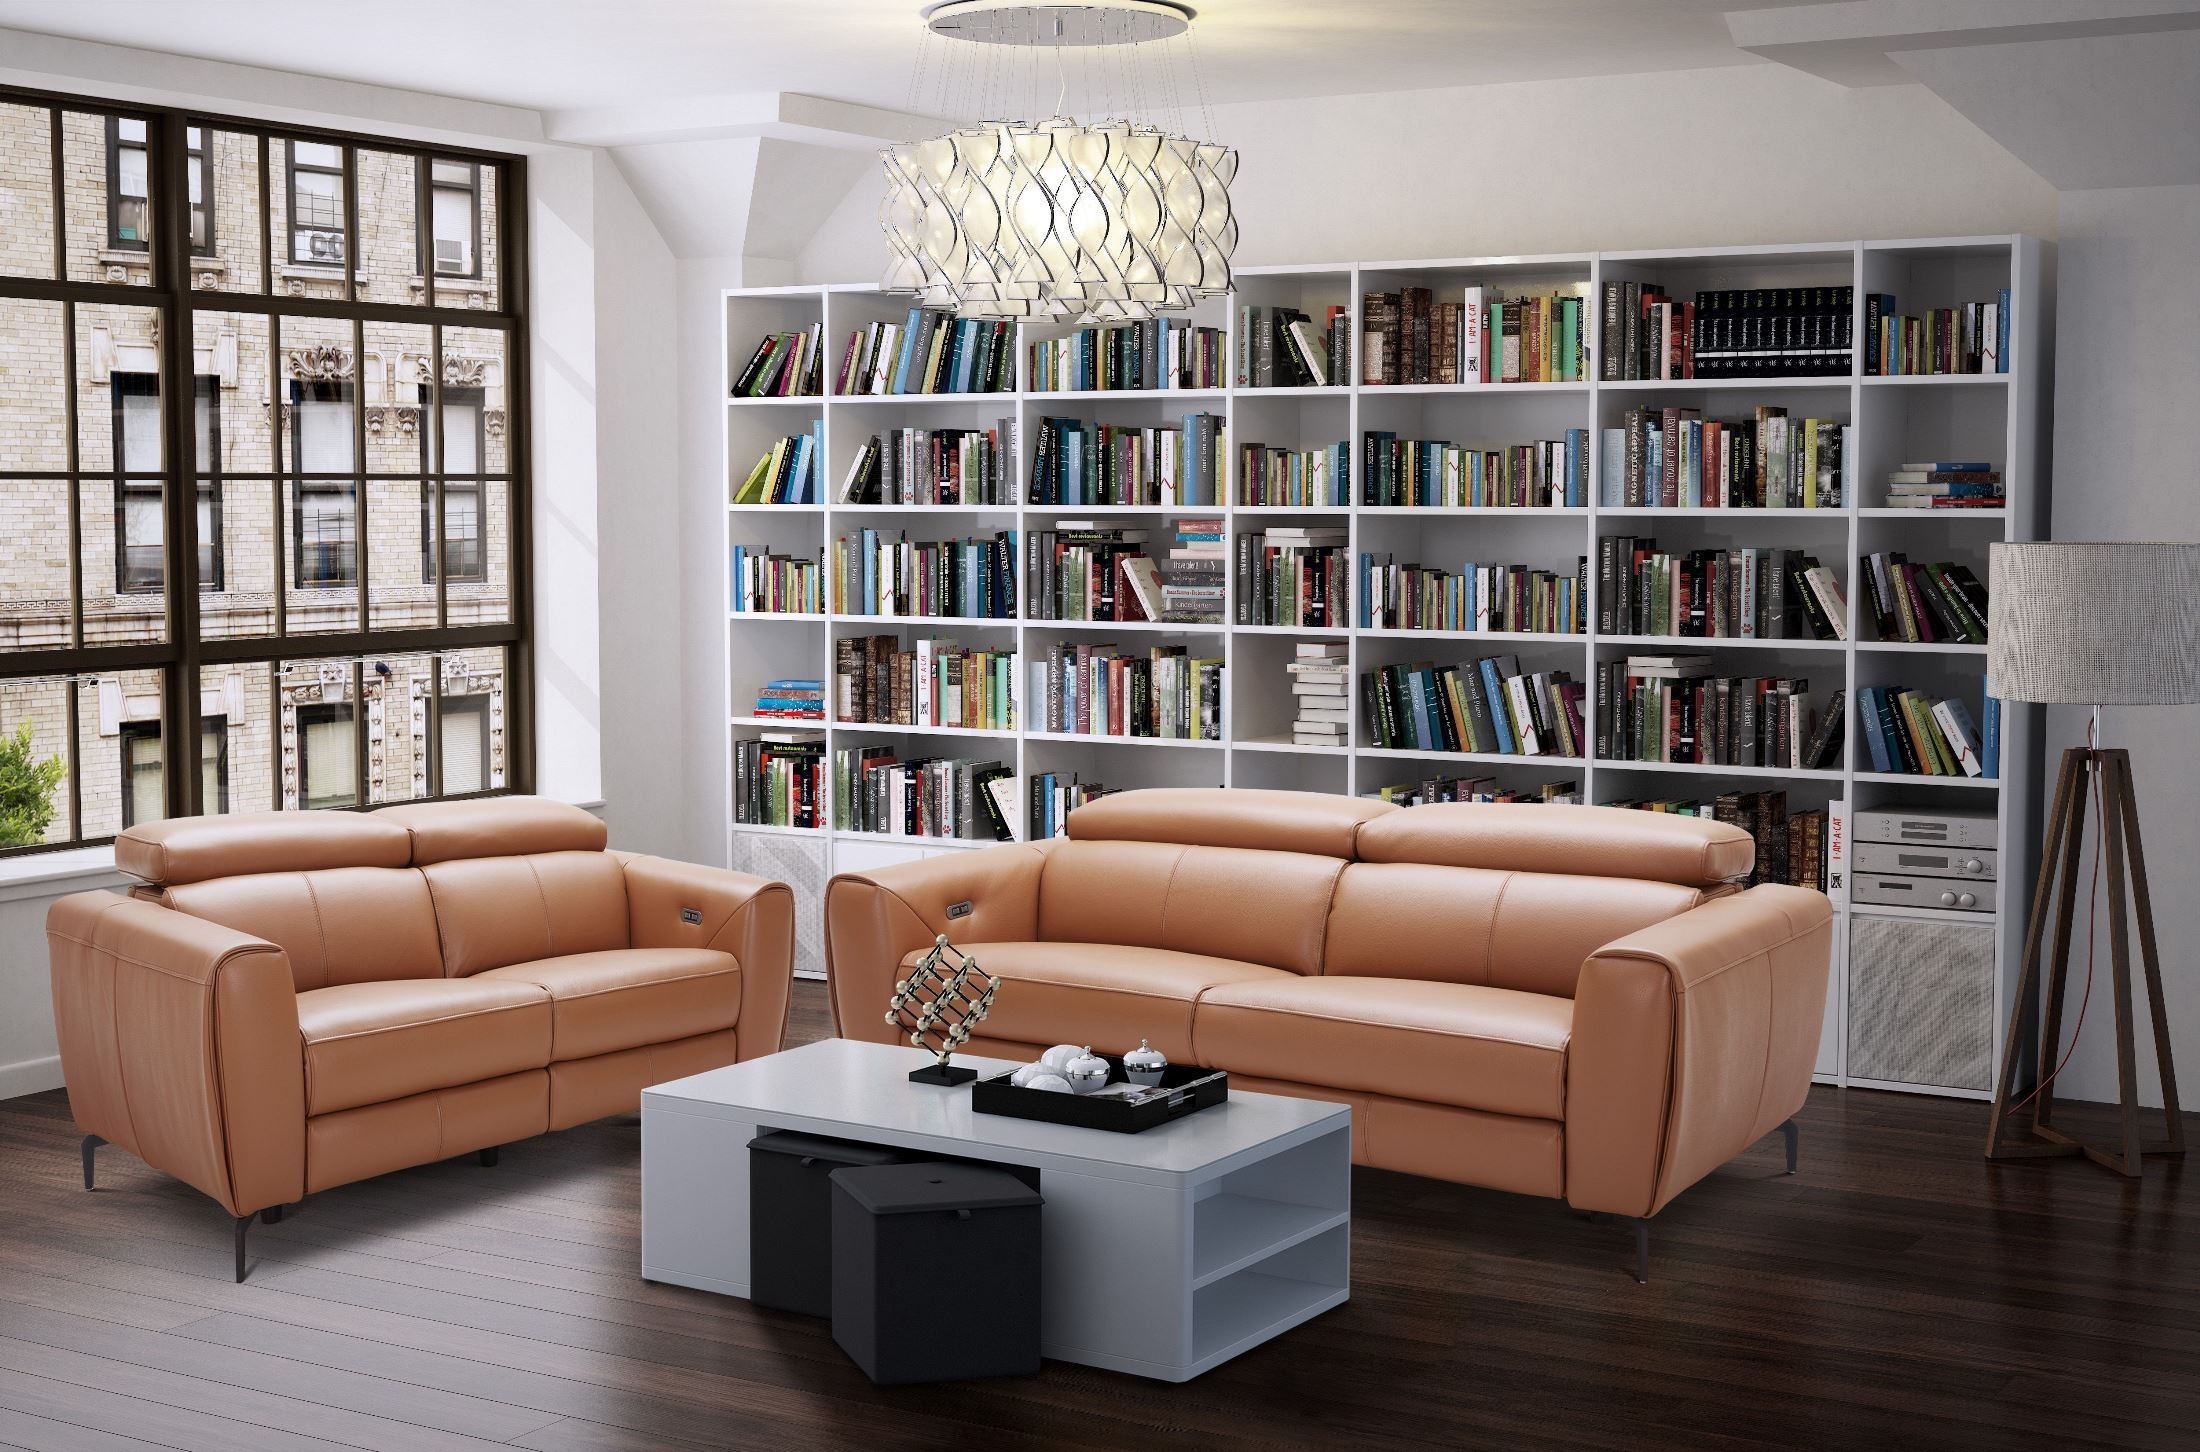 Lorenzo Caramel Leather Sofa 1stopbedrooms